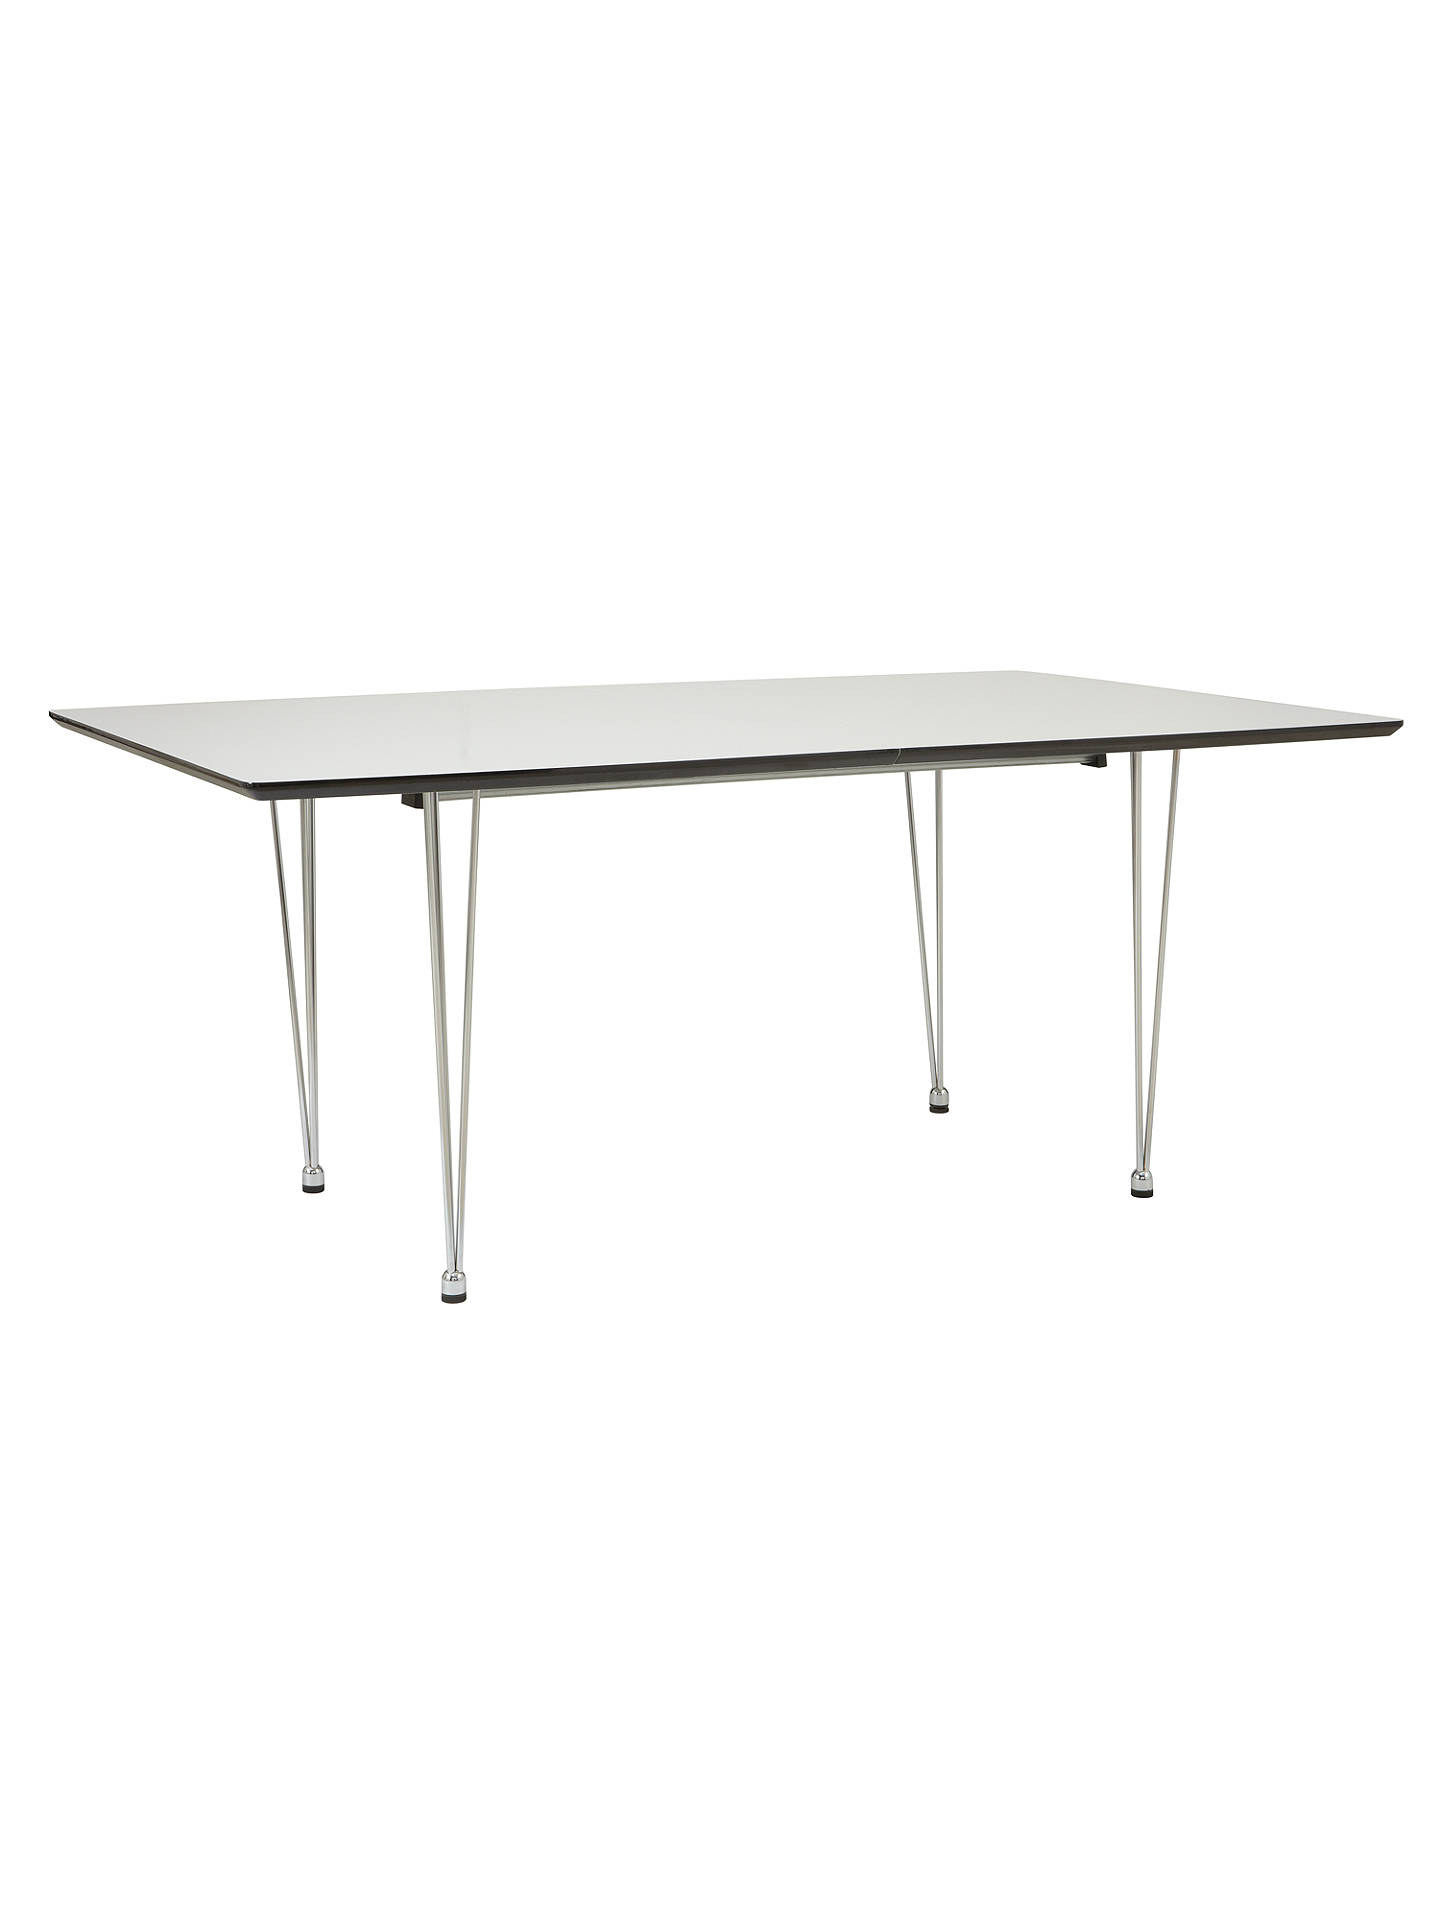 Lia 10 Seater Extending Dining Table